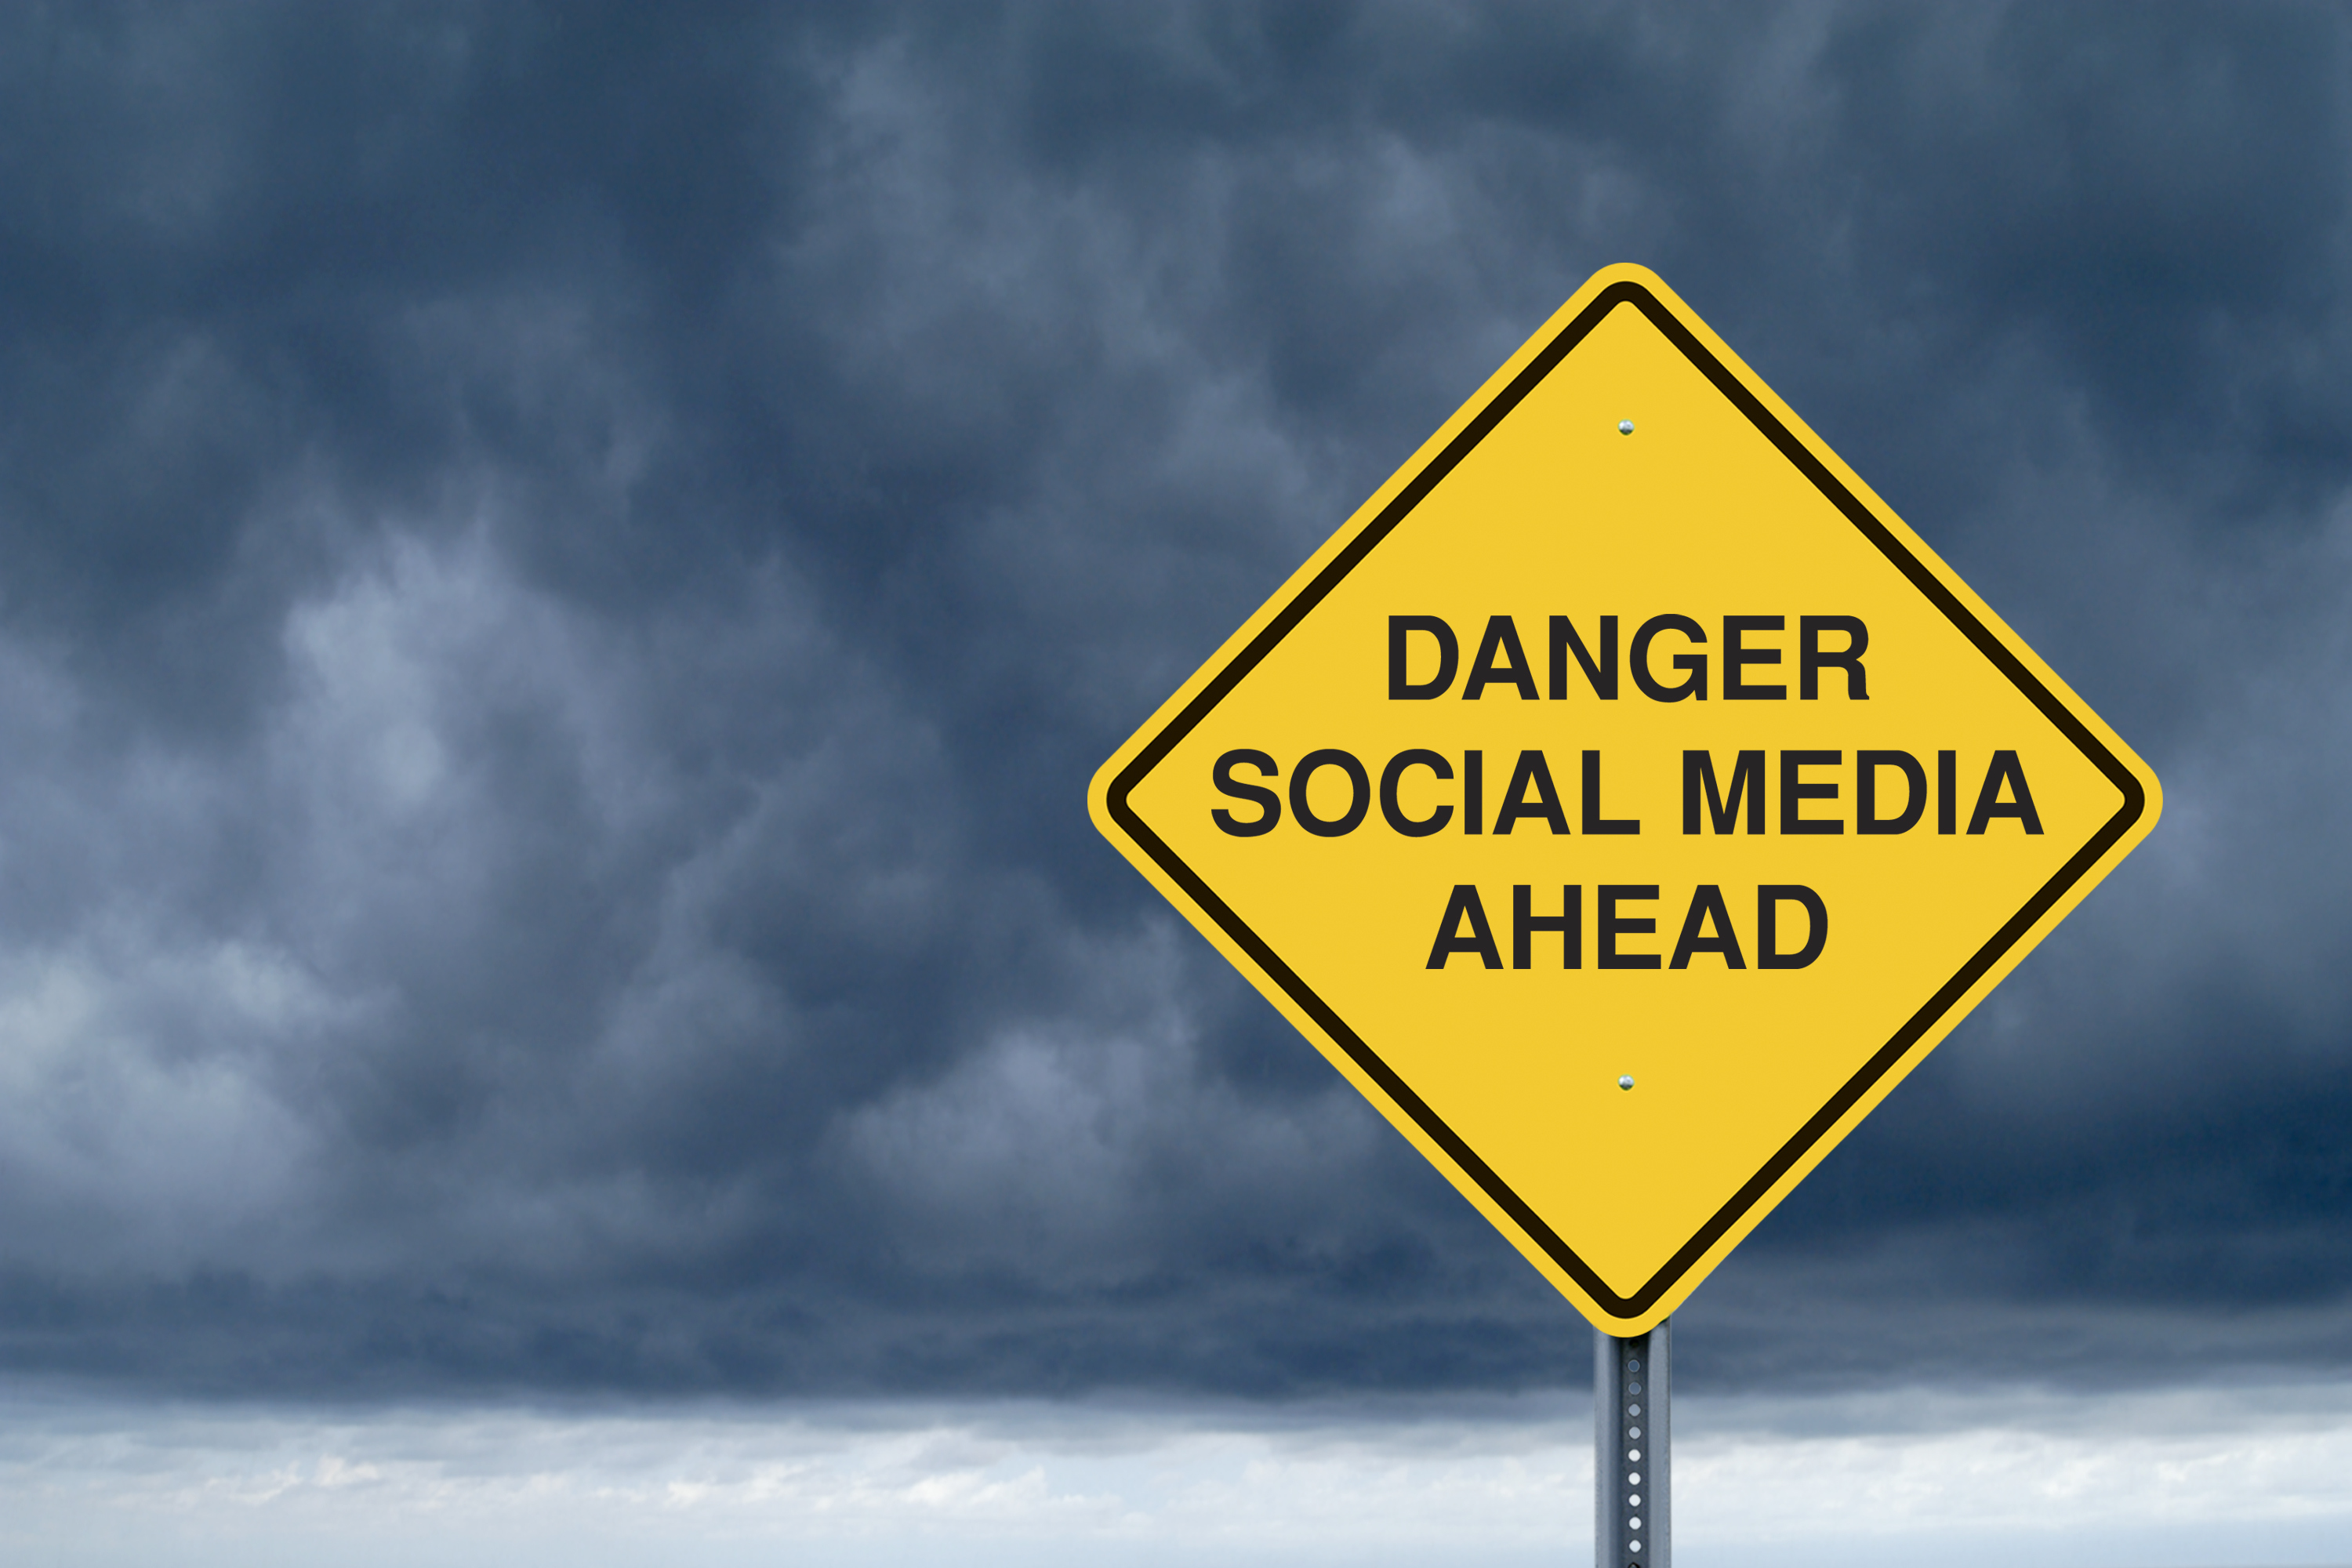 Dangers of mmorpgs and social media